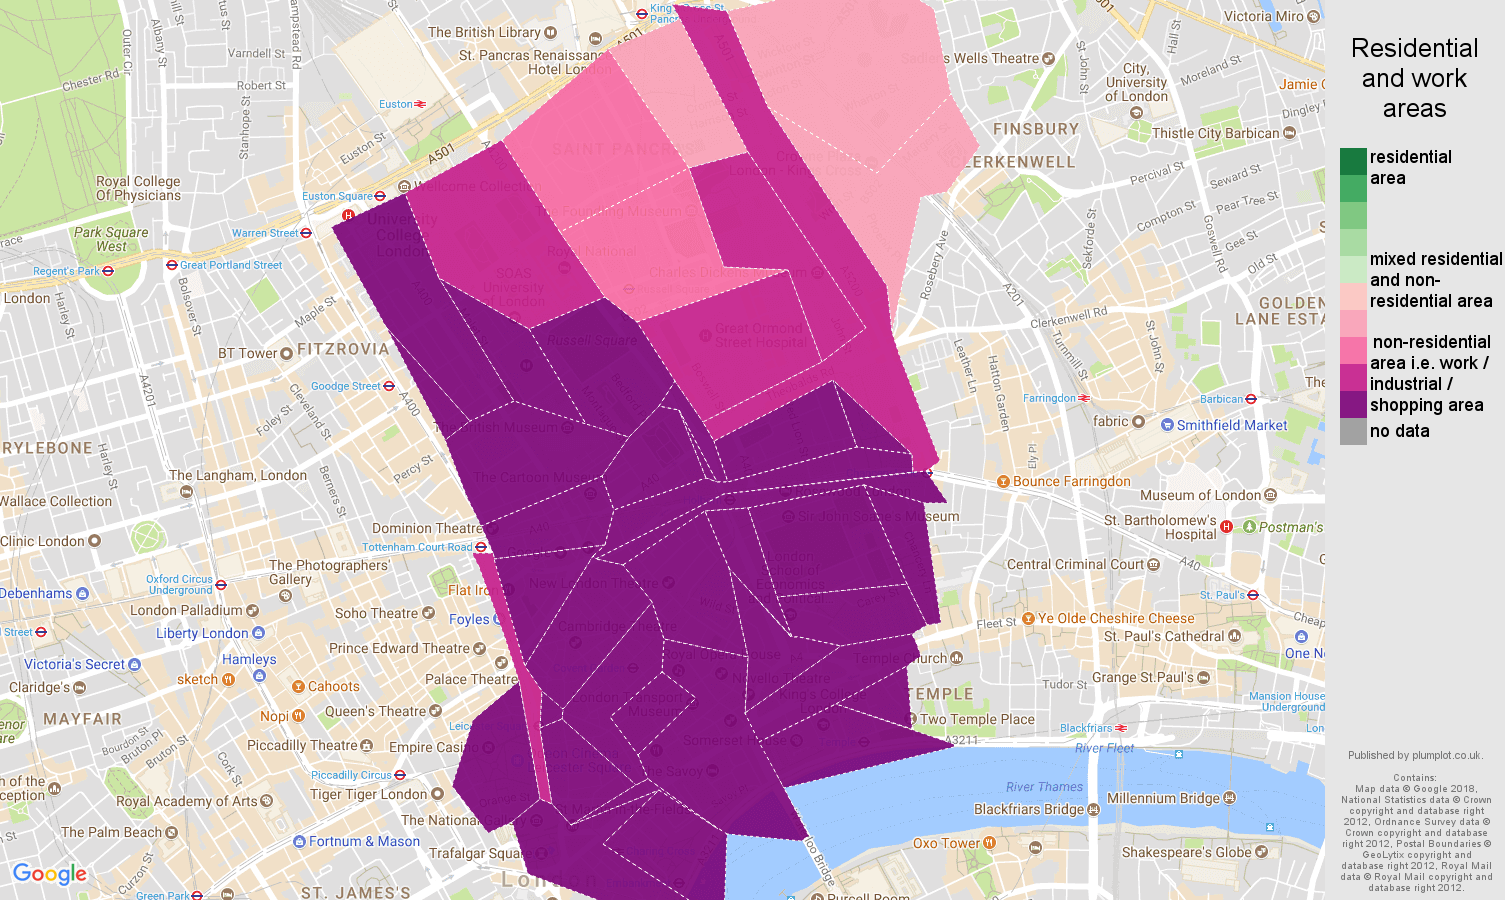 Western Central London residential areas map